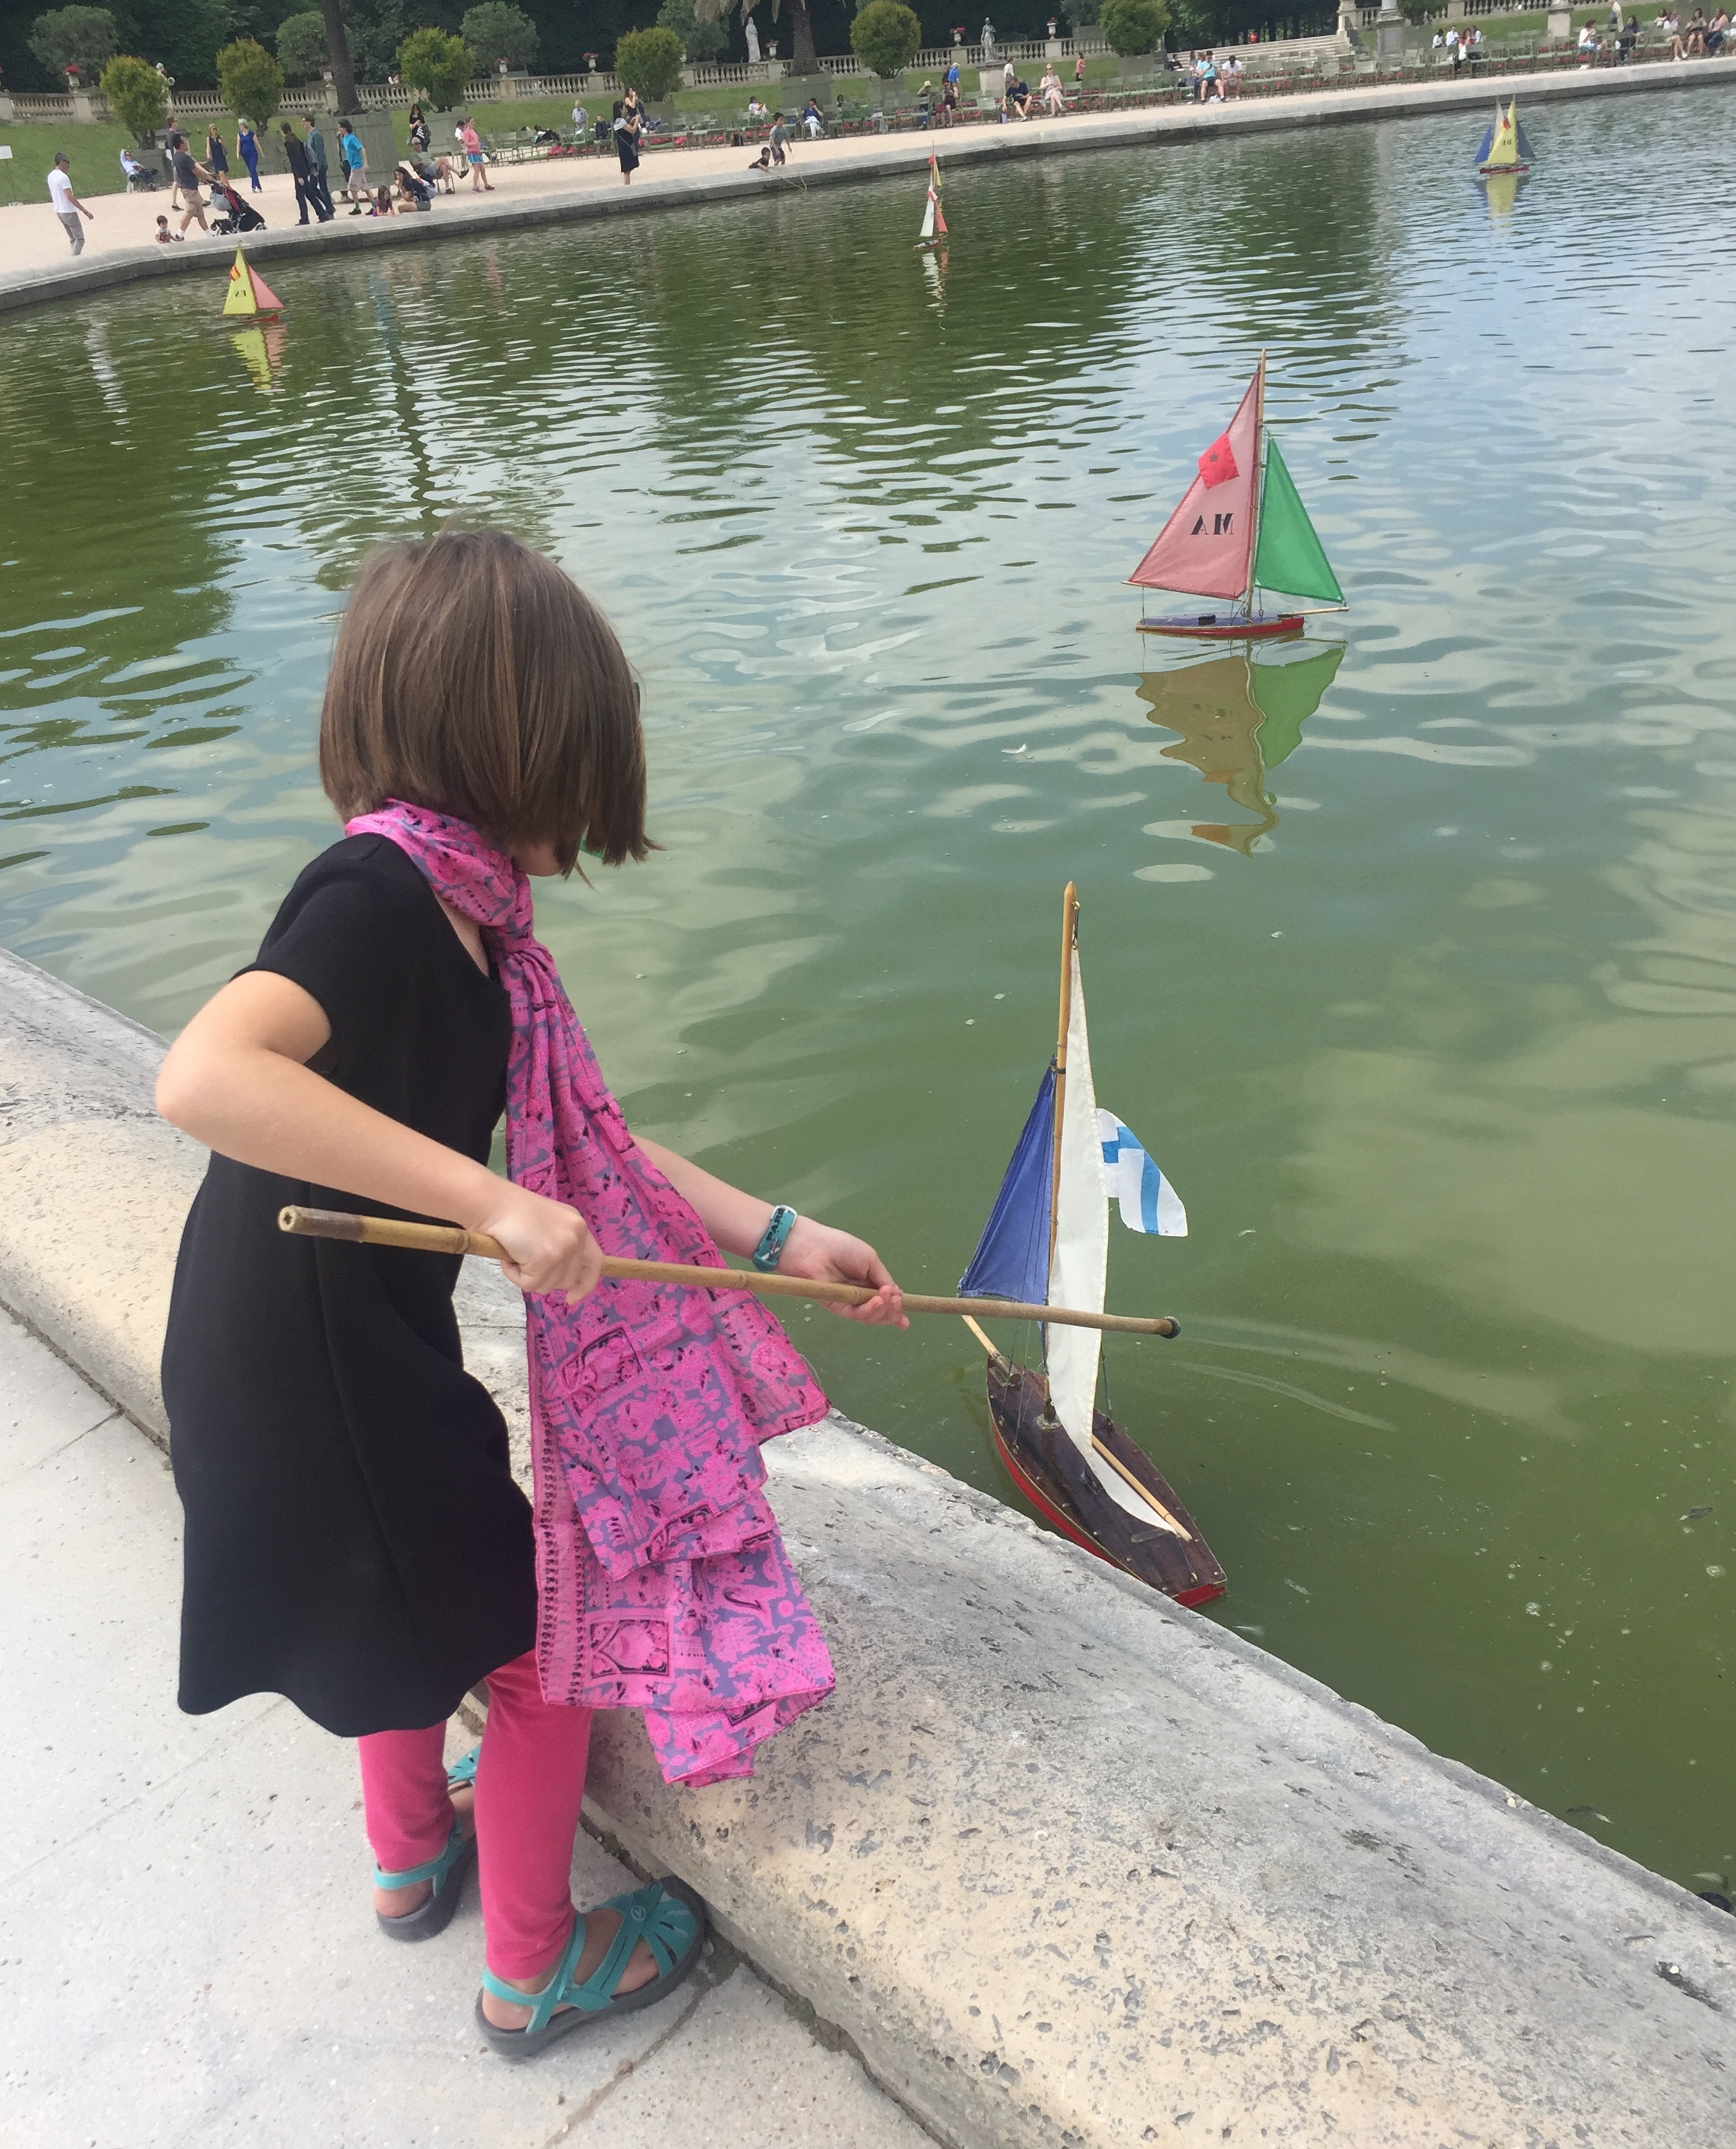 Young girl pushing a sailboat with a stick in Paris. When you research your destination, you can find things to do with your kids.